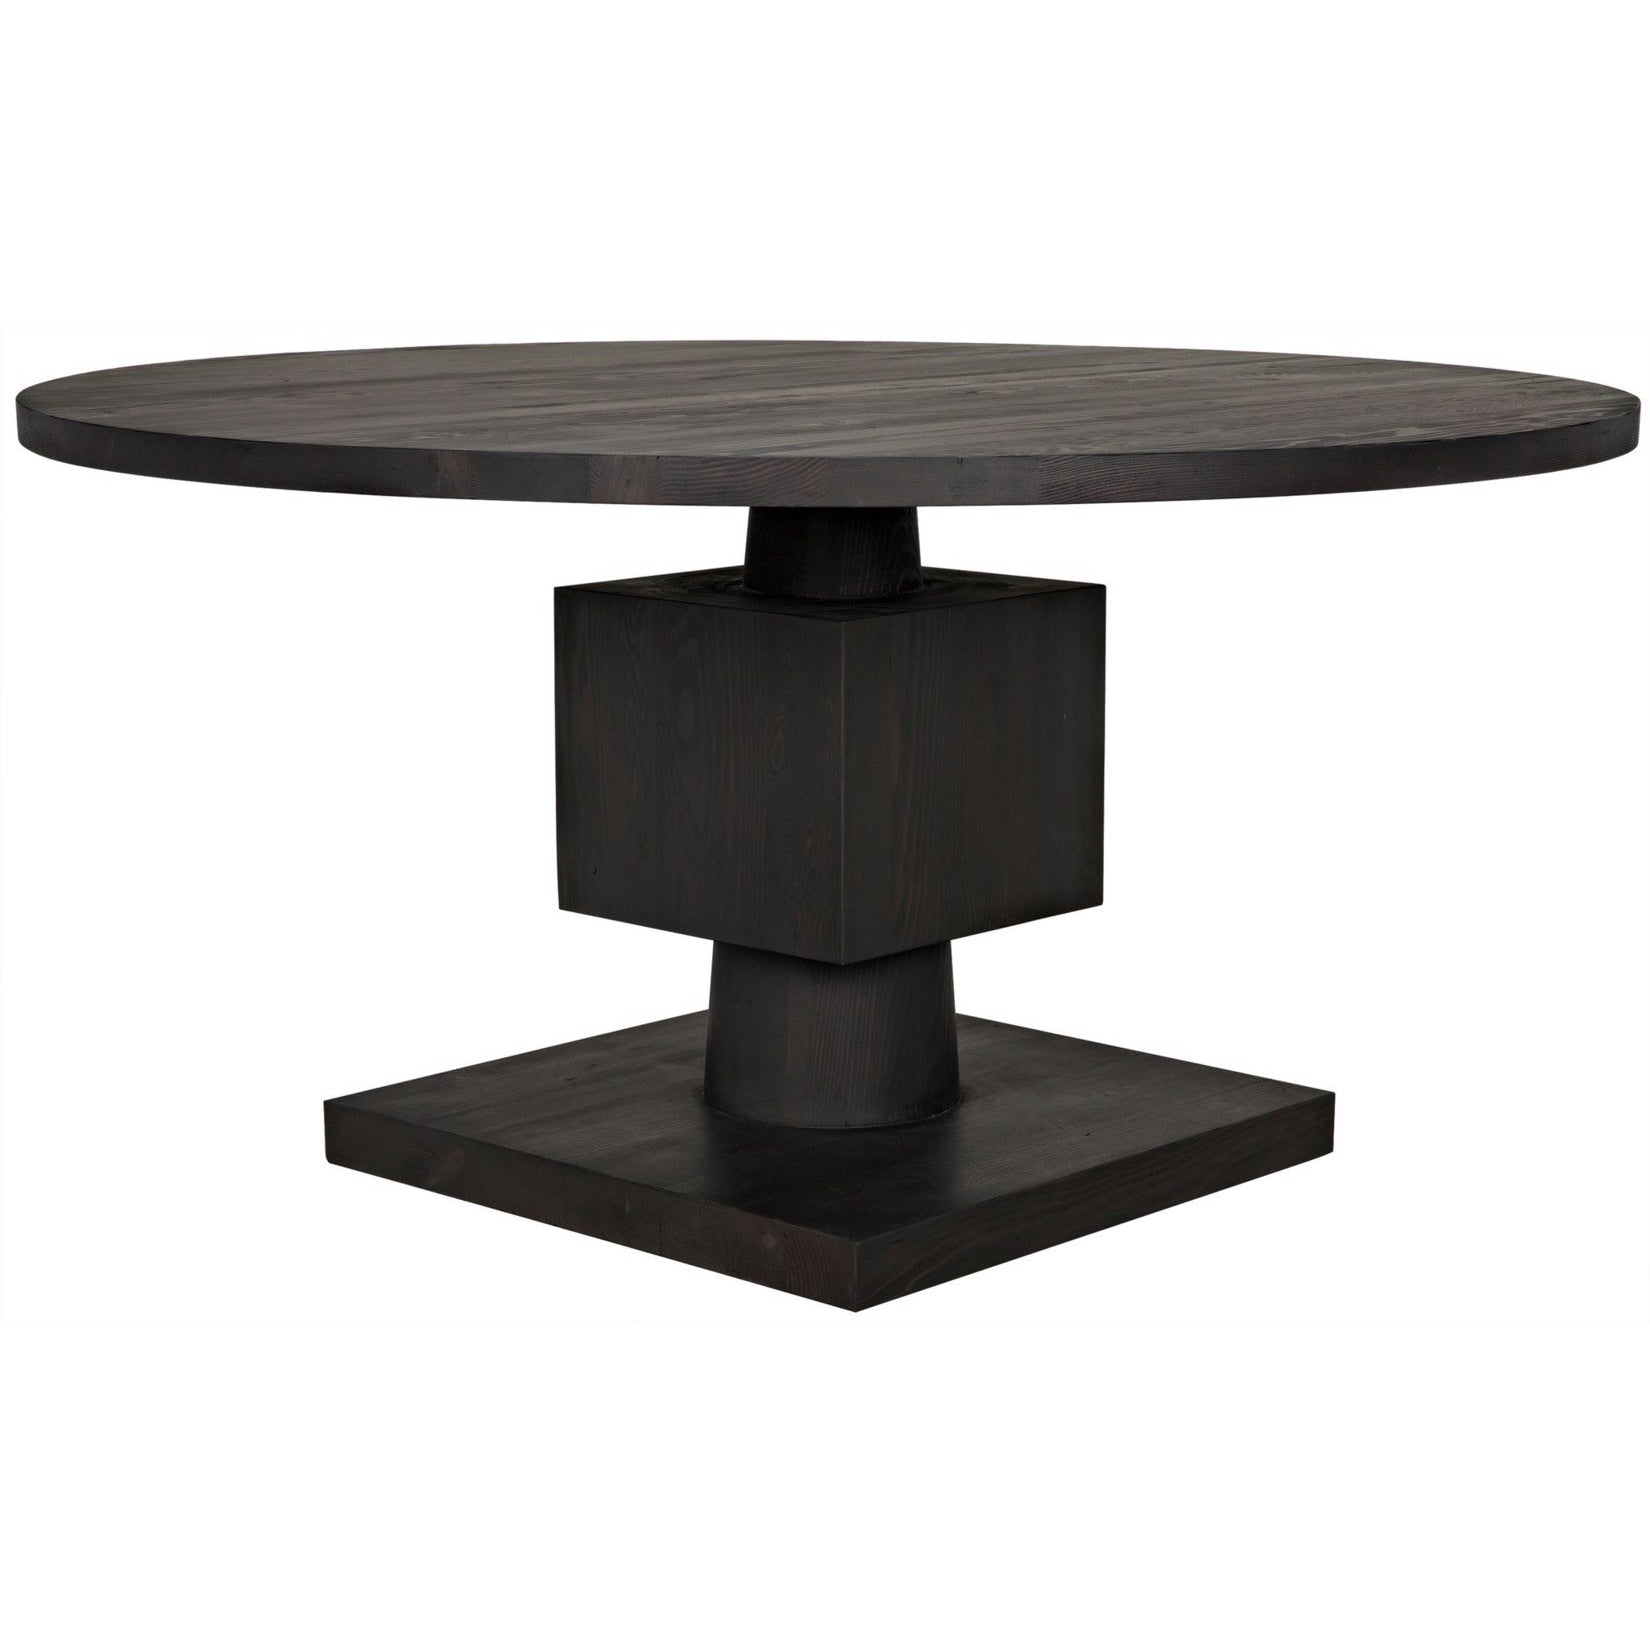 CFC Furniture Sarah Dining Table